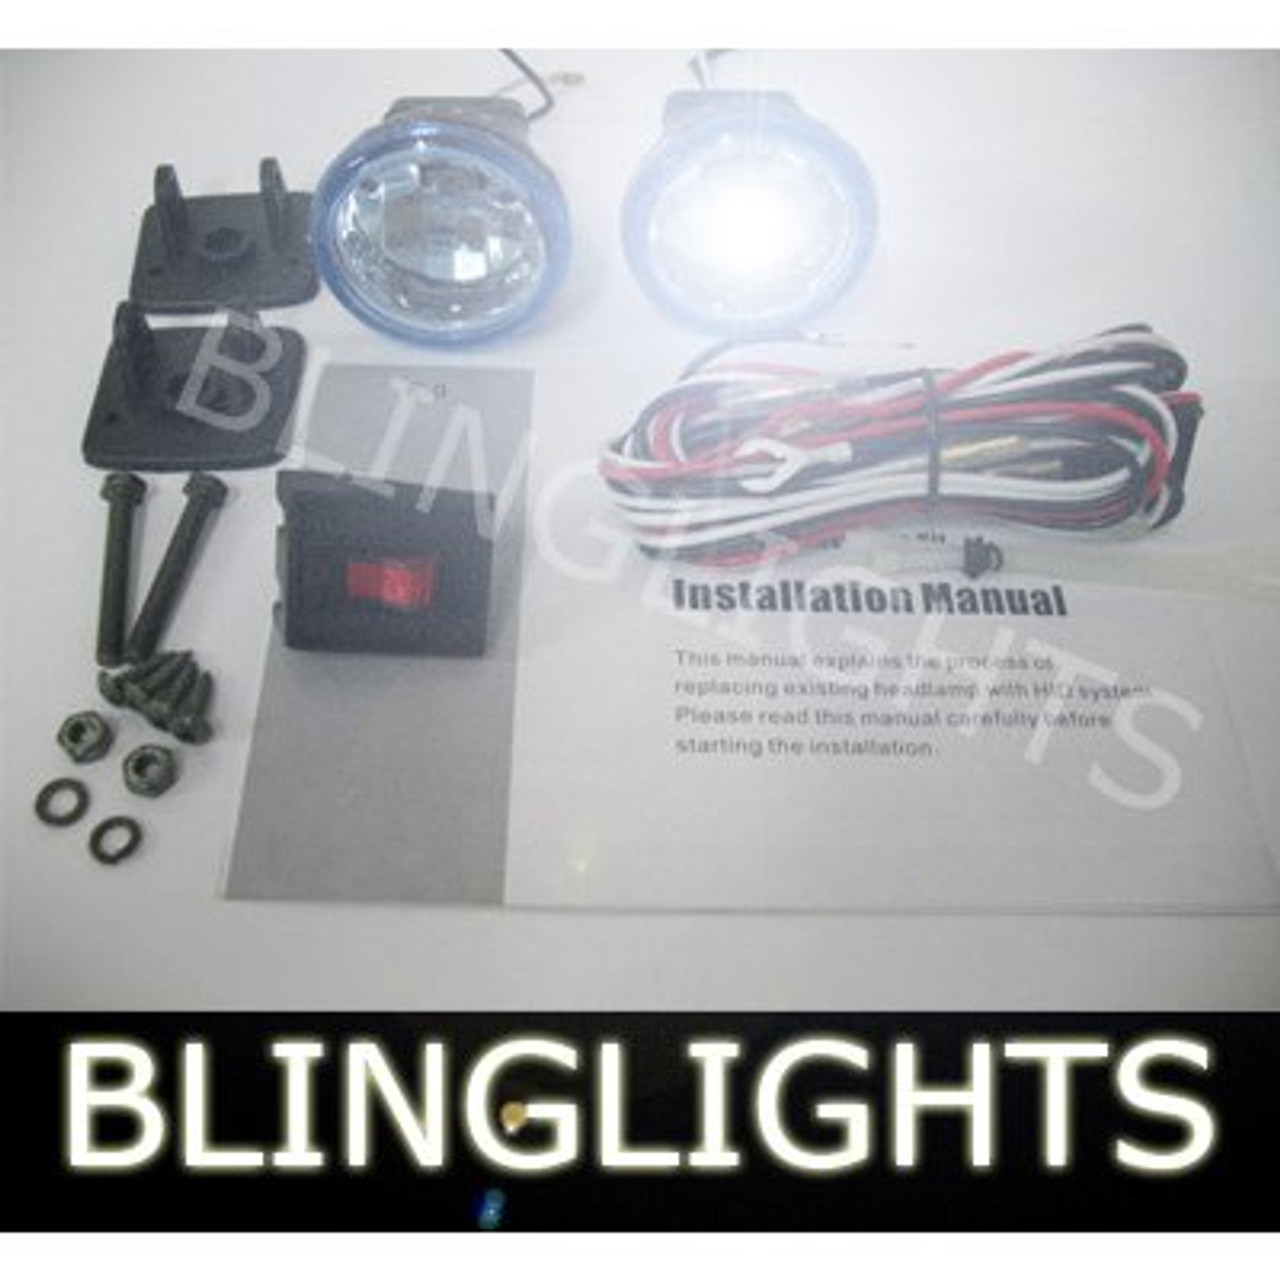 13 14 Opel Mokka Xenon Fog Lamps Driving Lights Foglamps Foglights Drivinglights Kit